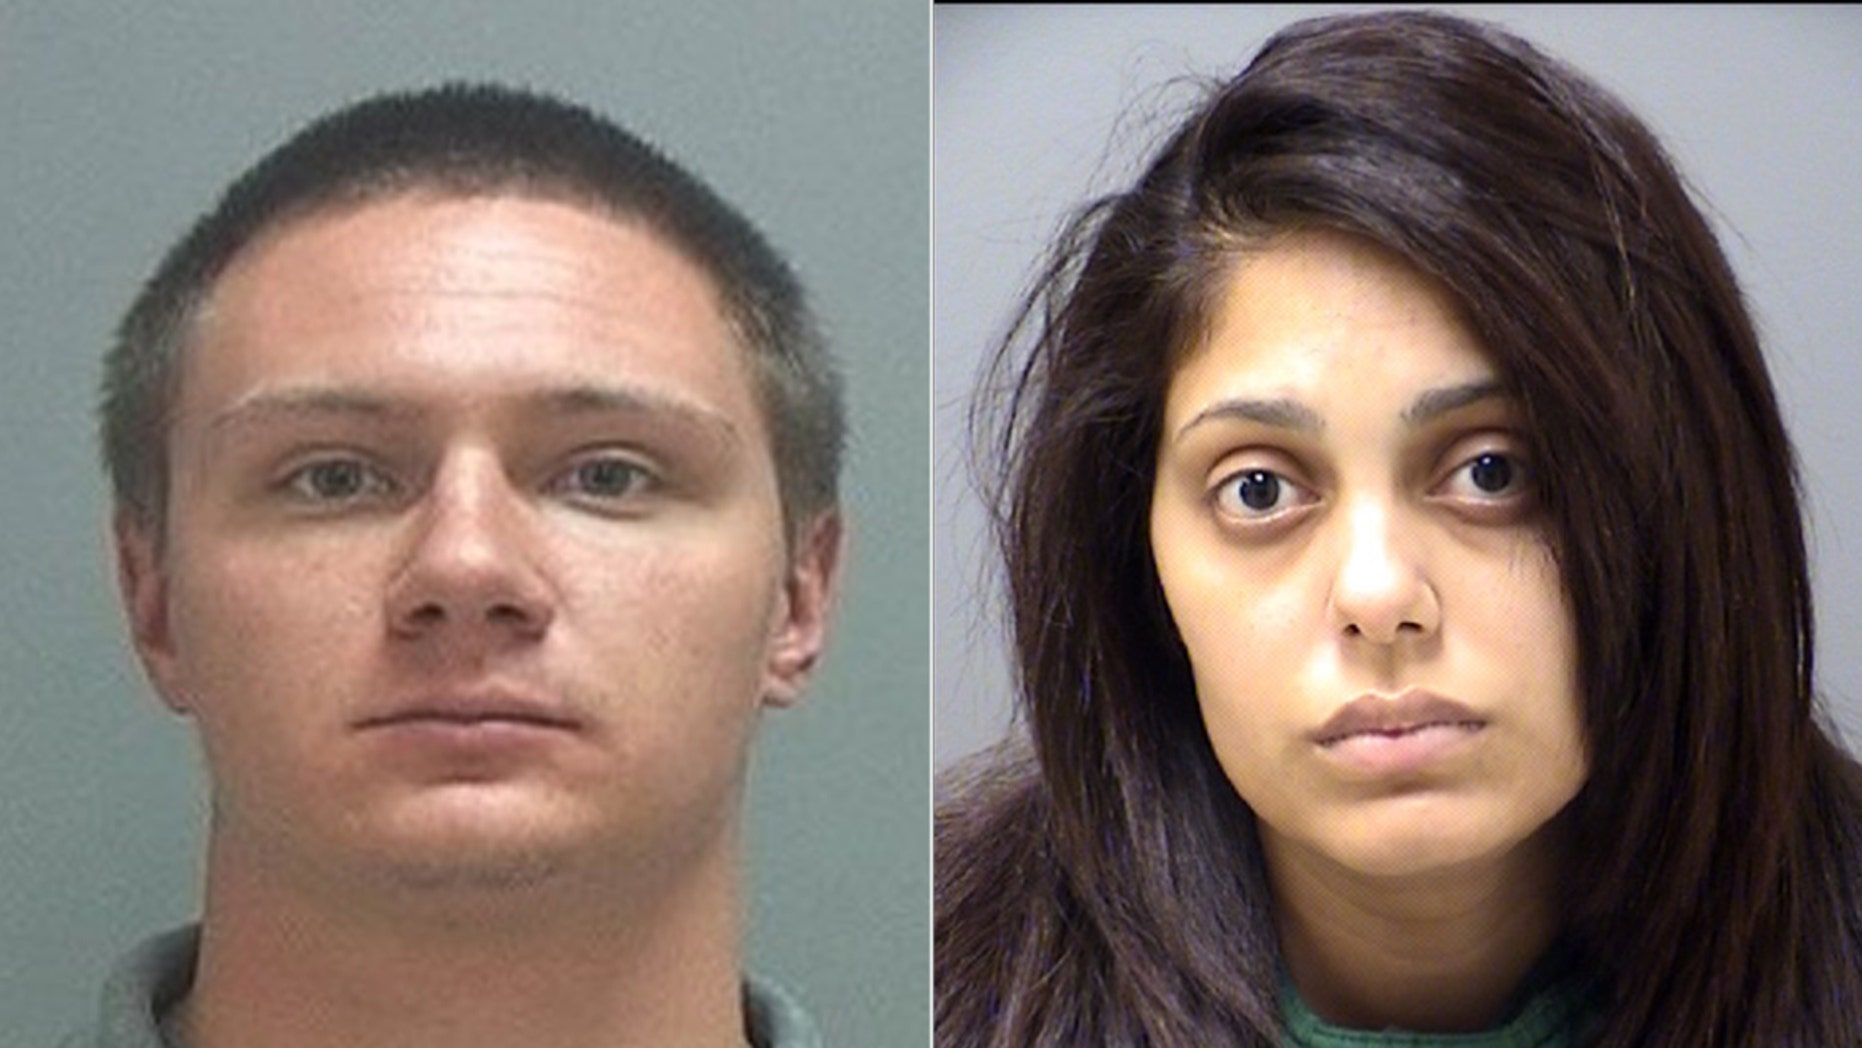 Maria Elena Sullivan and Dylan James Kitzmiller were charged in connection to the murder of the woman's 13-day-old baby.